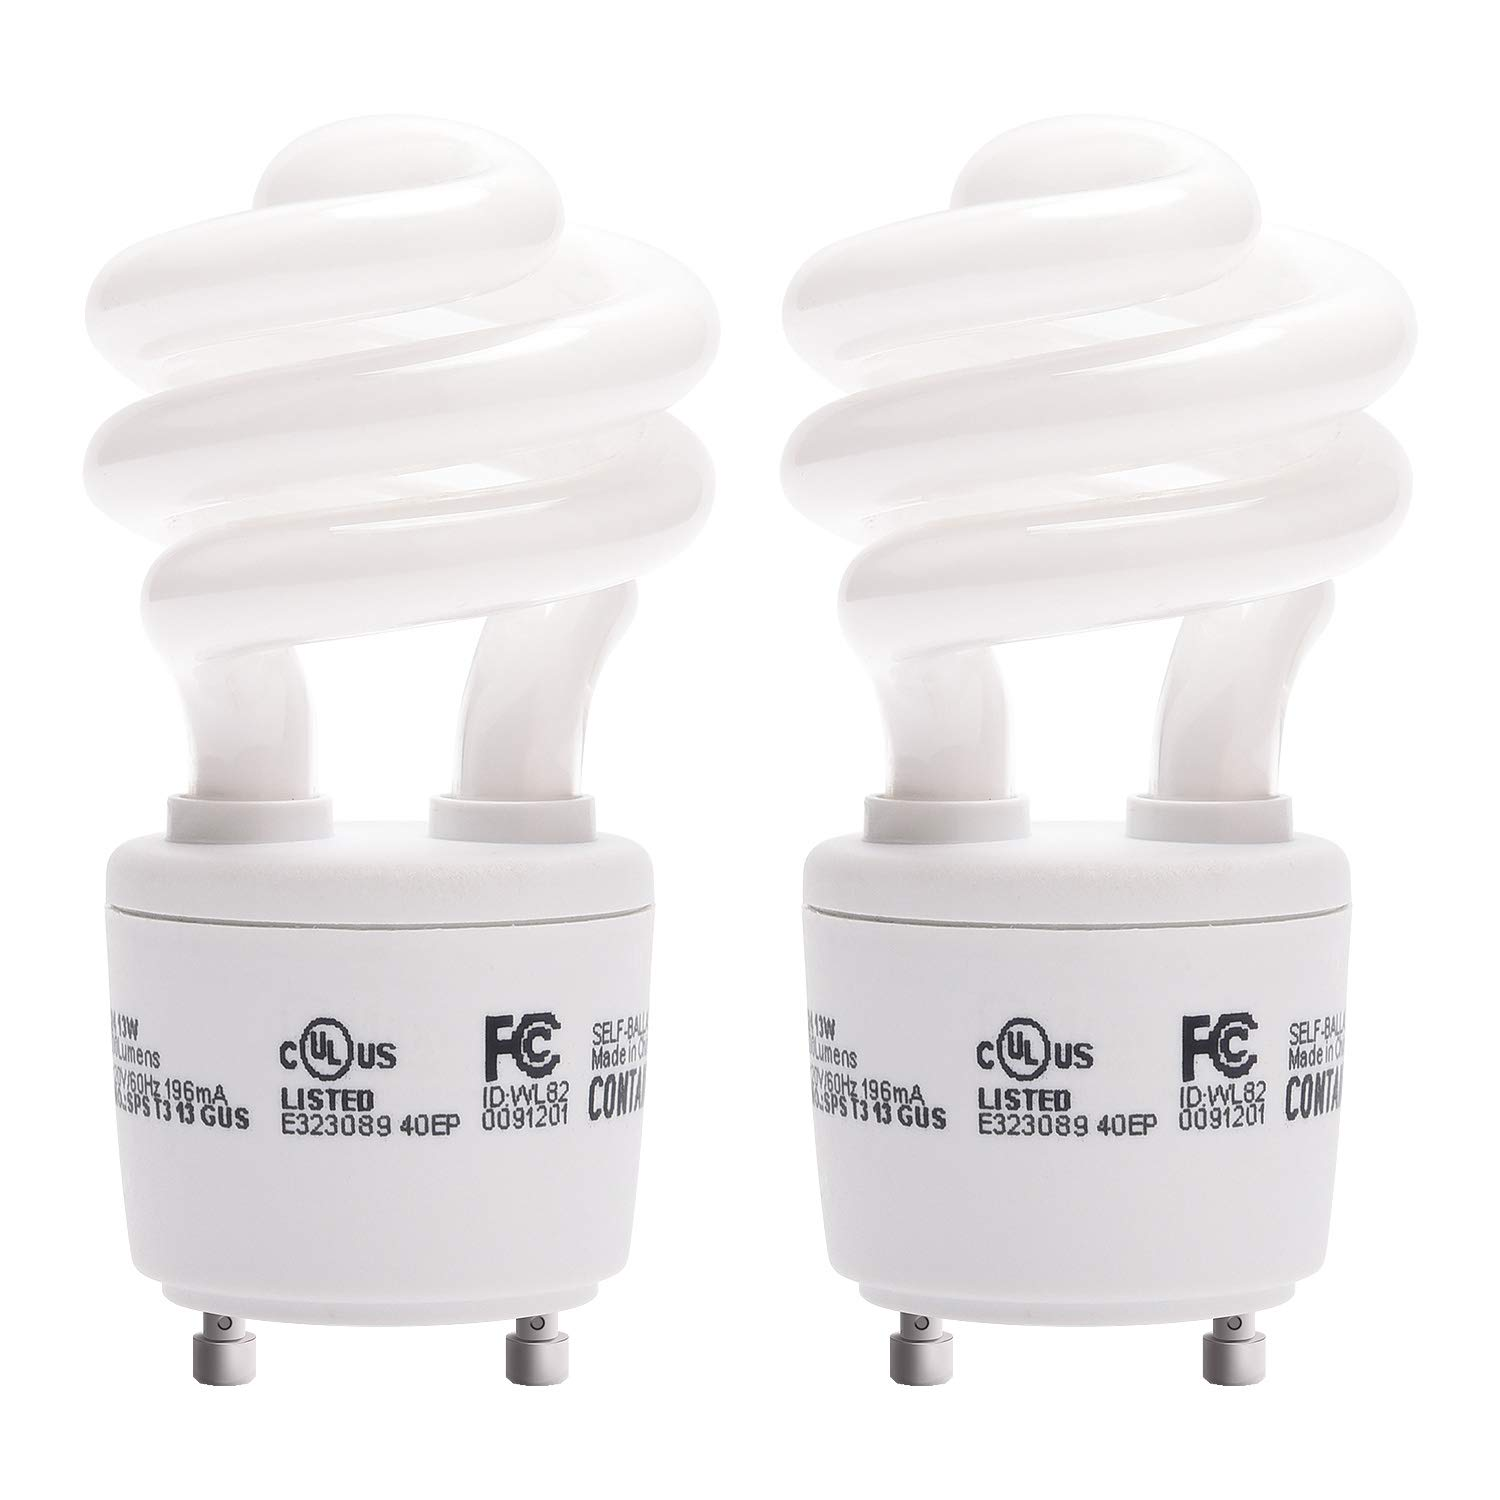 Gu24 CFL Light Bulbs JACKYLED 2-Pack UL T3 Spiral 13w Gu24 Base 120v 900lm Warm White 2700k Gu24 Fluorescent Light Bulbs Indoor Use